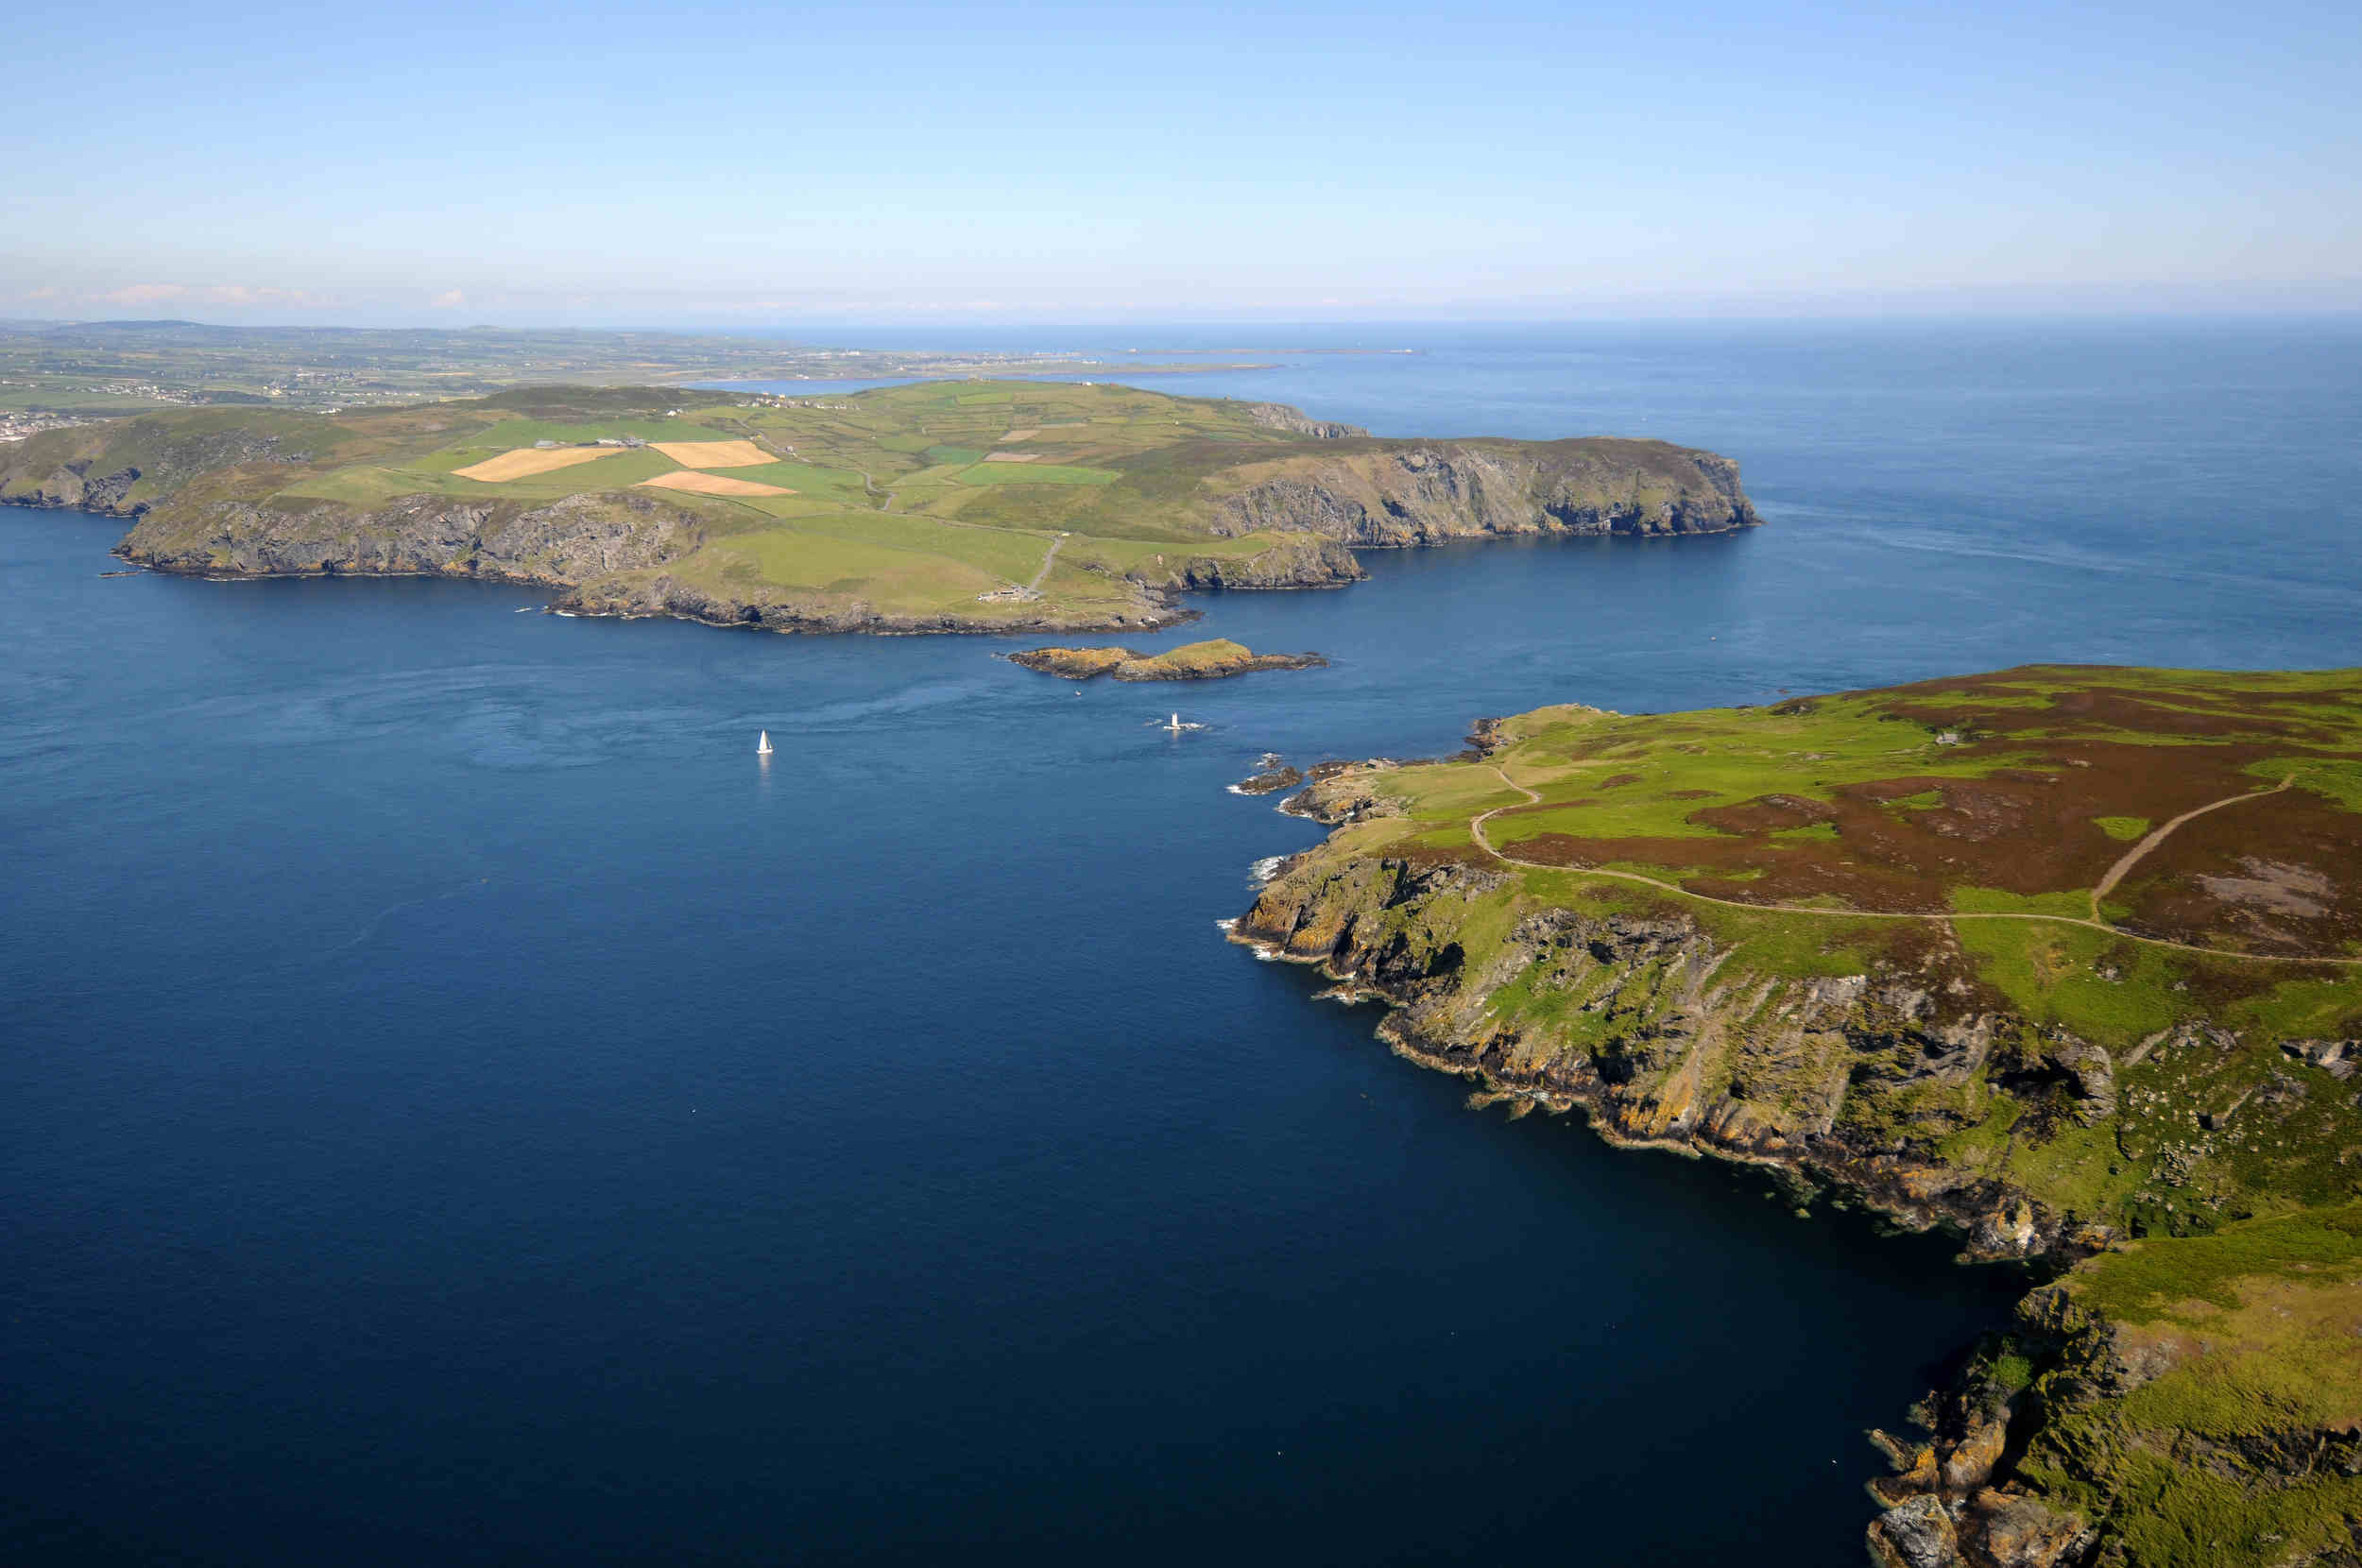 The Sound, Kitterland and the Calf of Man